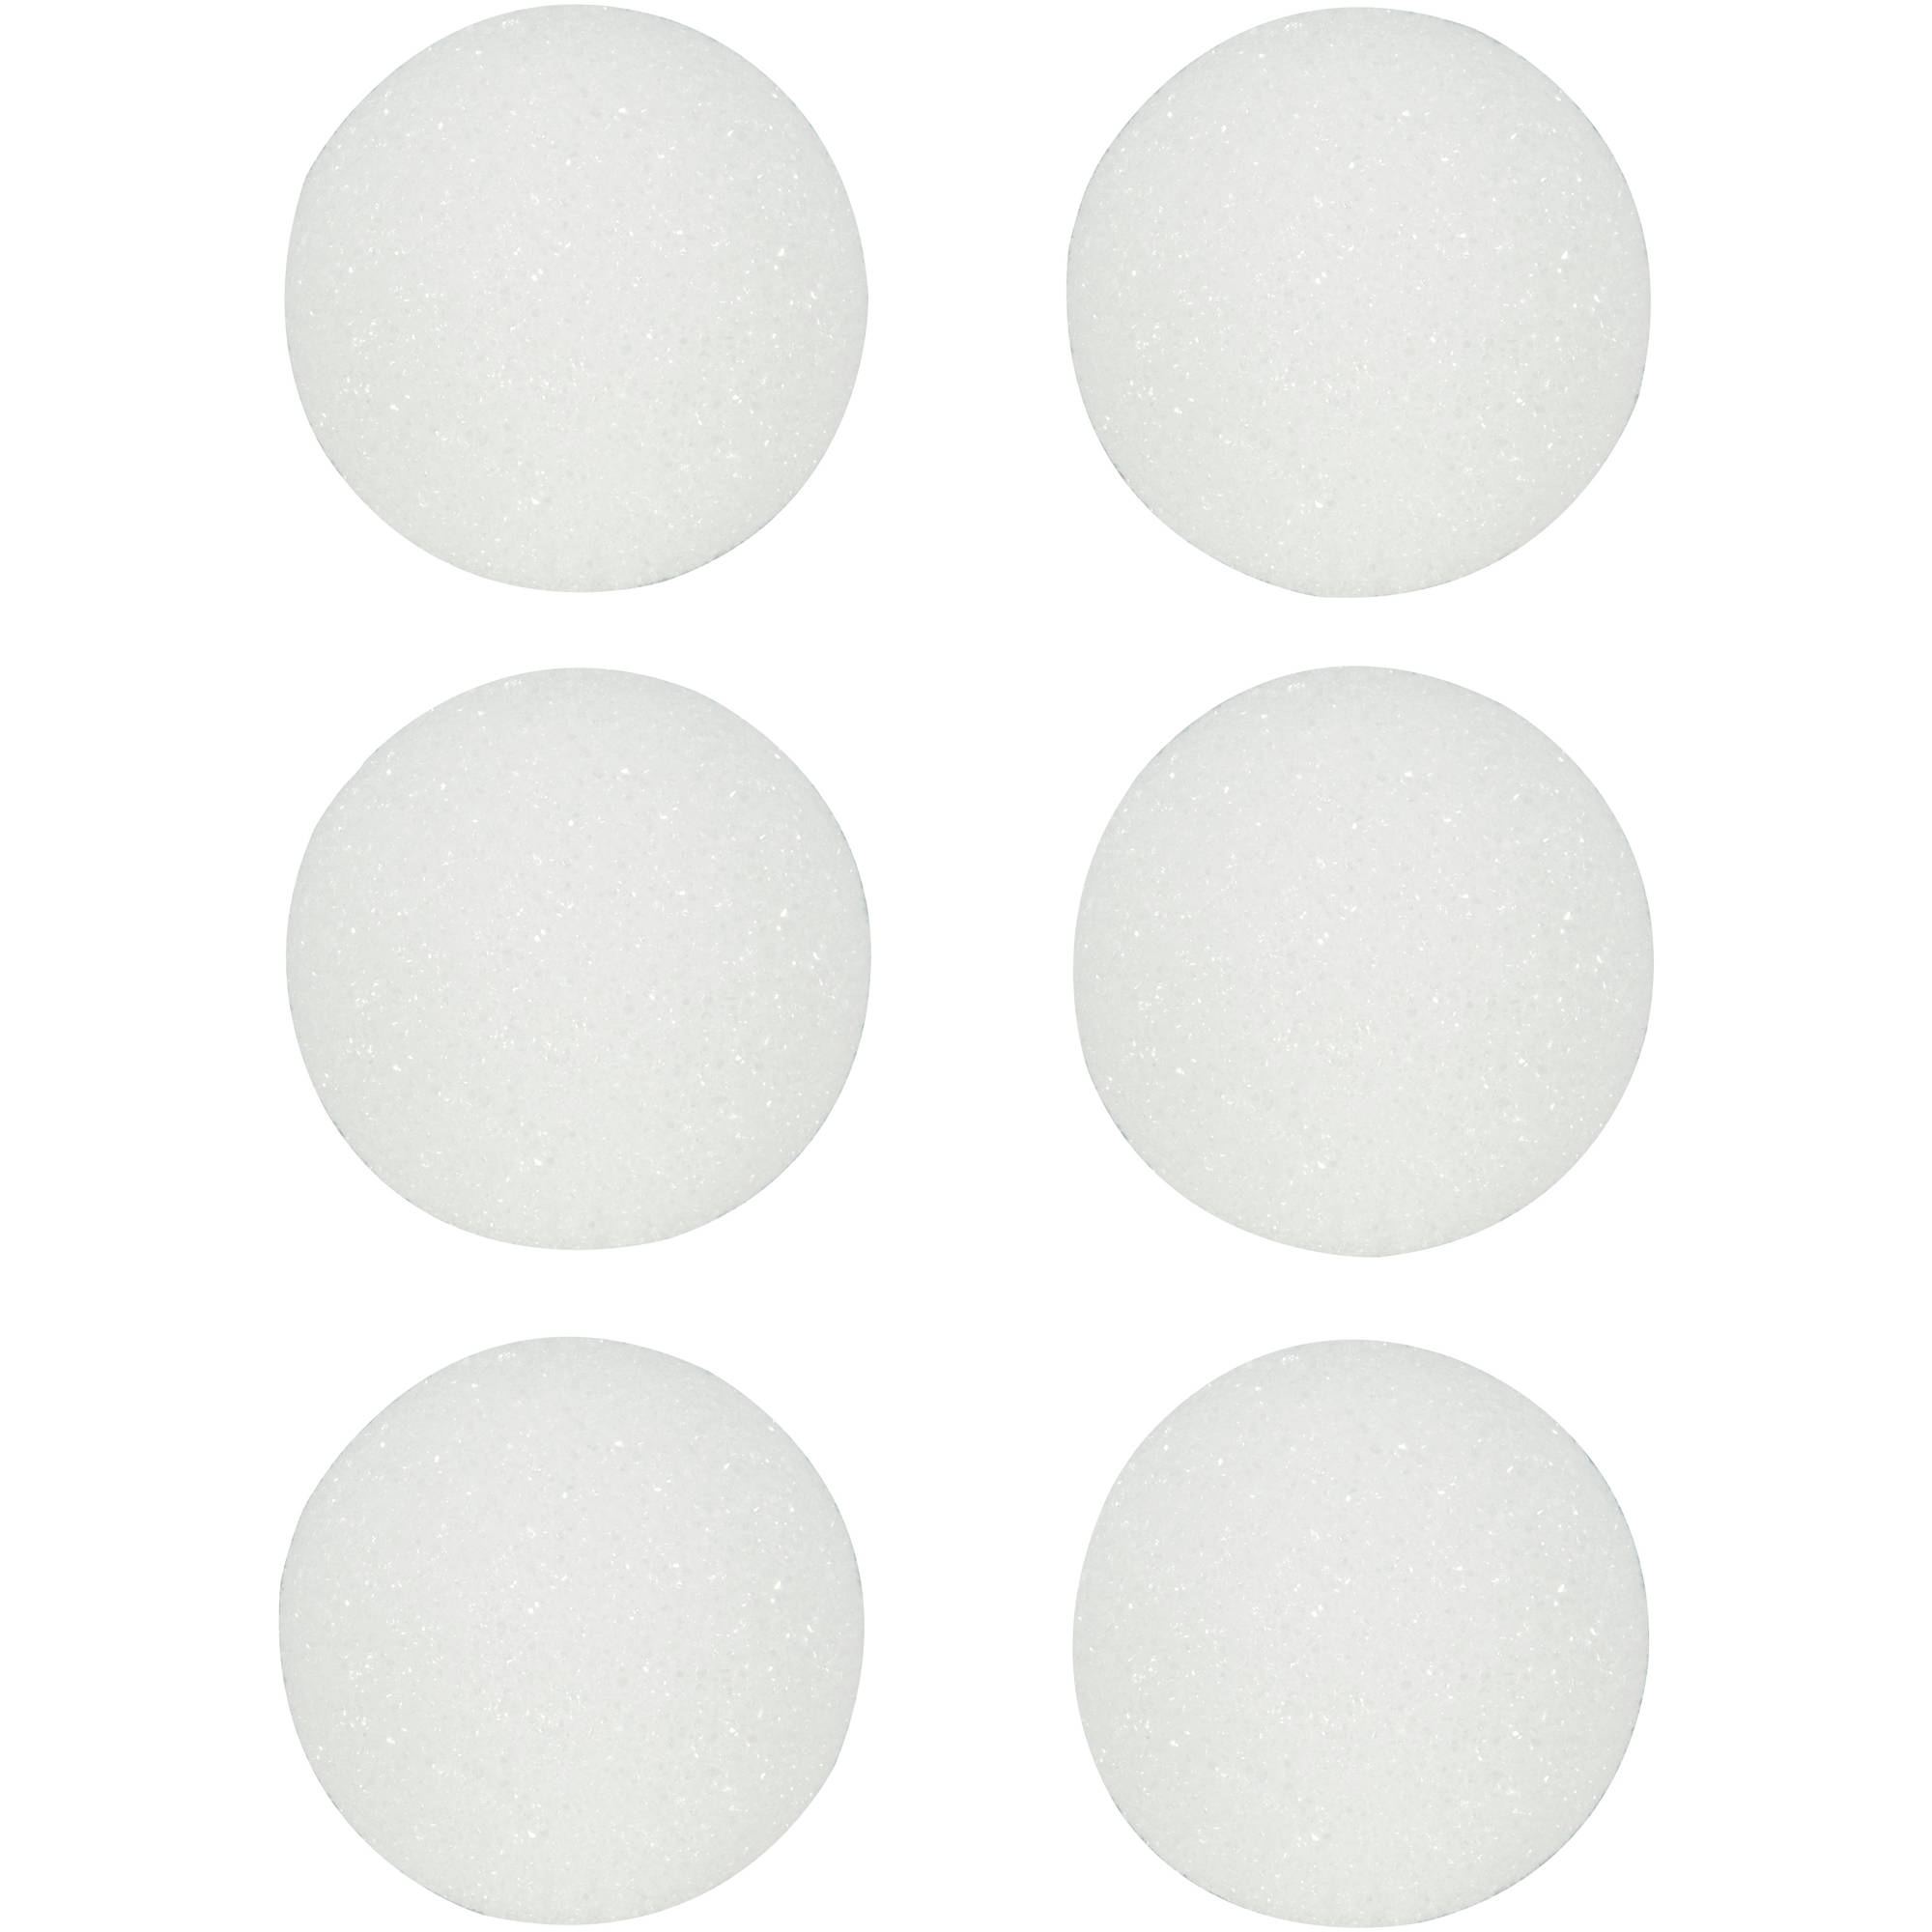 Make It Fun Styrofoam Ball 2.5in, 6pk, White